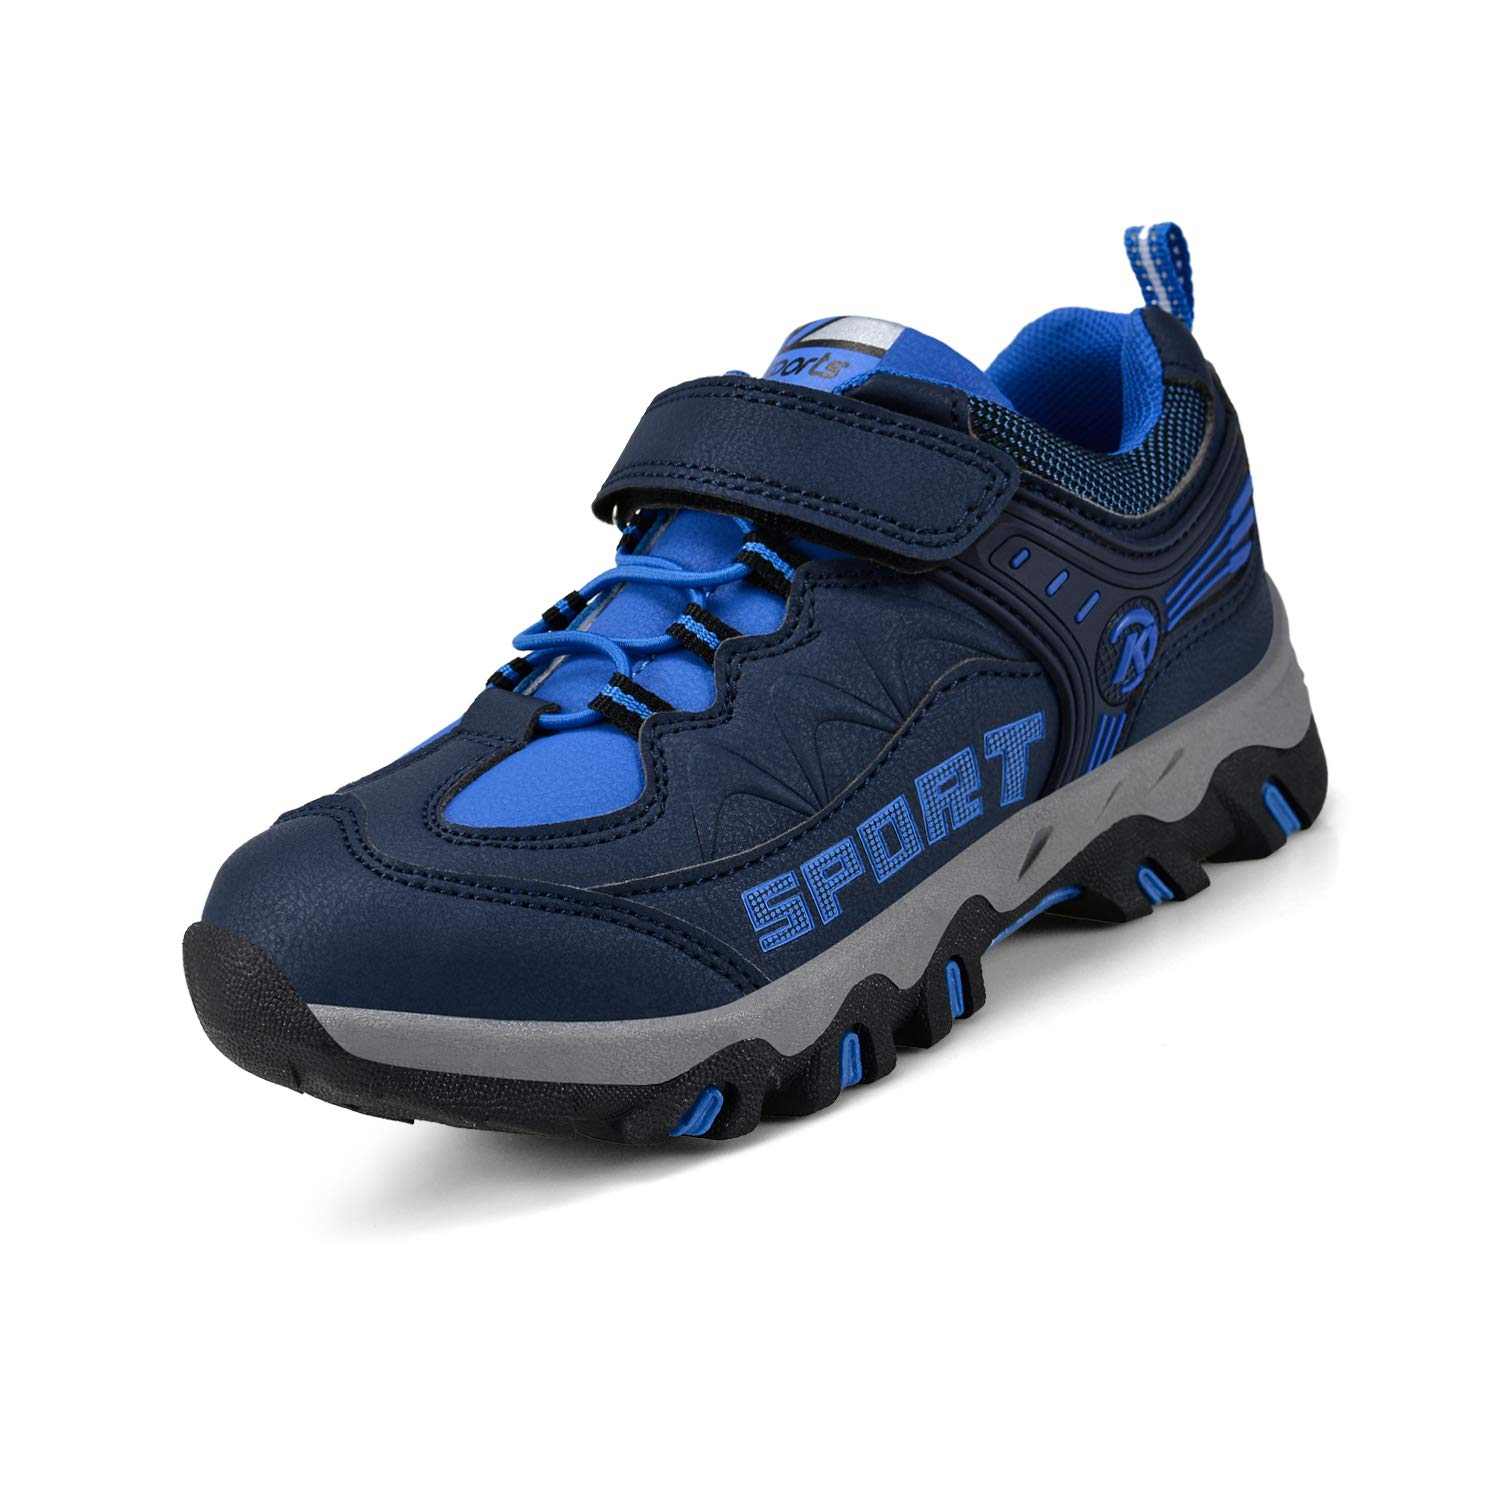 Nyznia Toddler Hiking Shoes Outdoor Youth Walking Running Shoes Pure Blue 1 US Little Kid by Nyznia (Image #1)